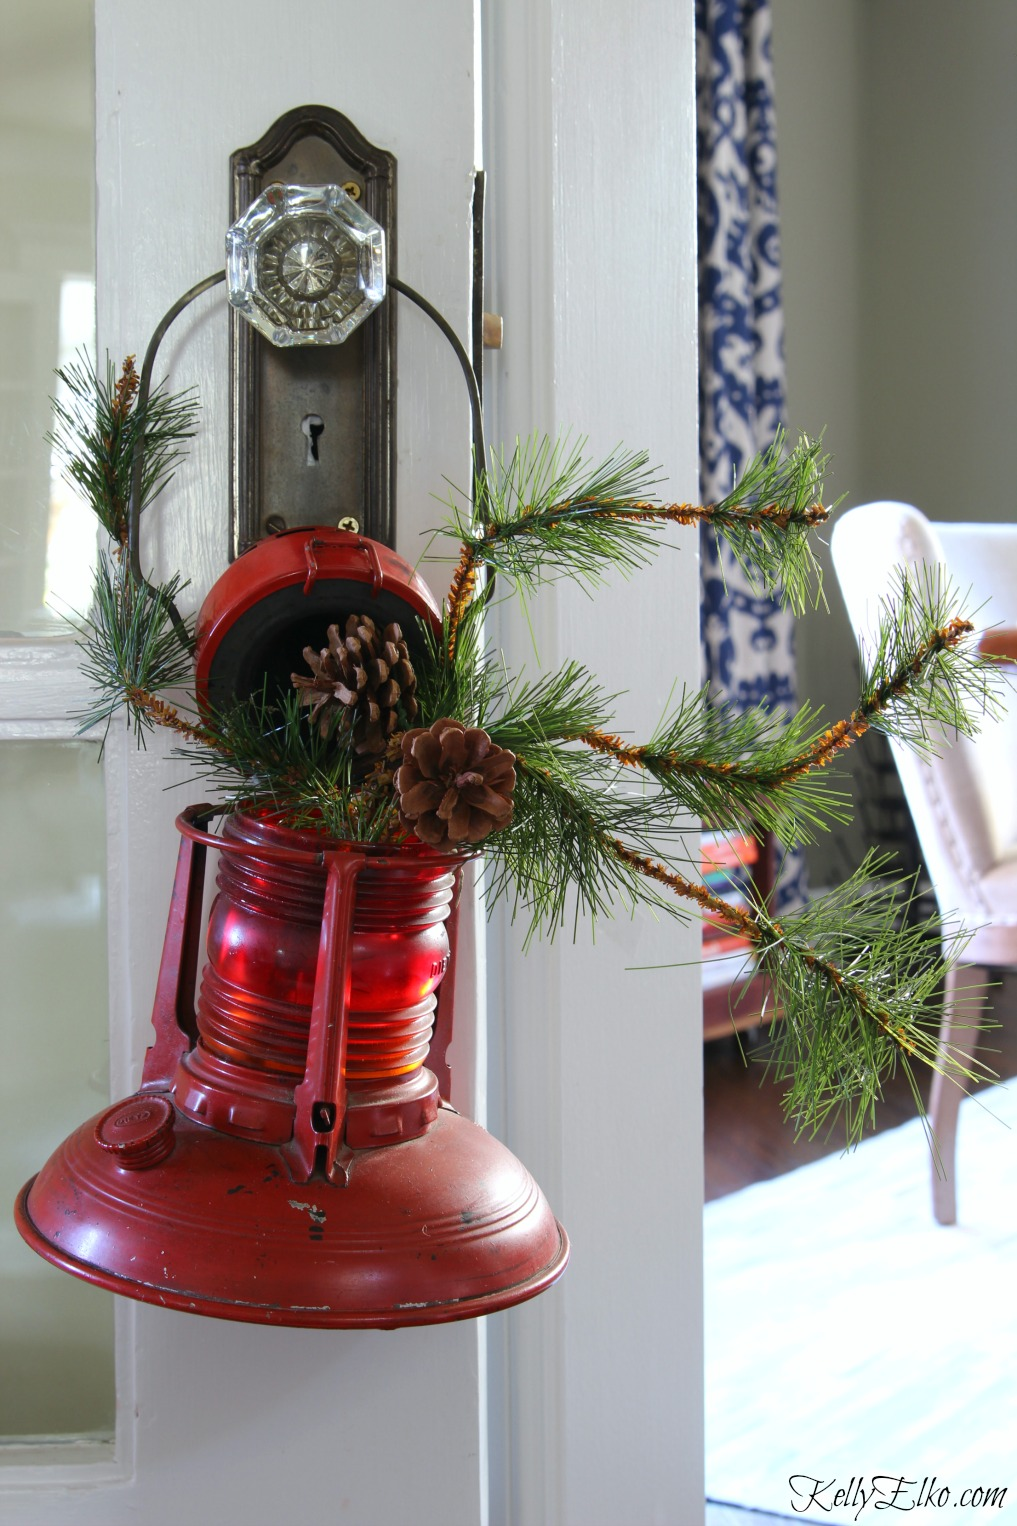 Vintage red lantern filled with Christmas greens kellyelko.com